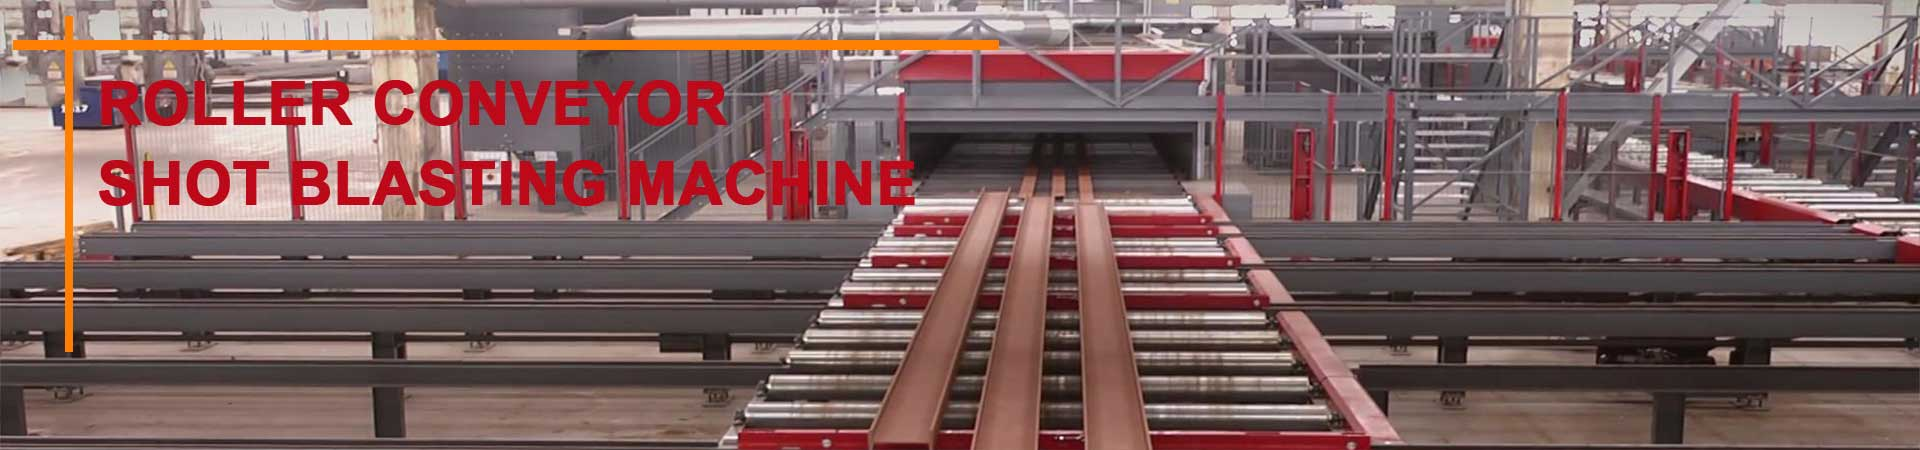 qinggong roller conveyor shot blasting machine